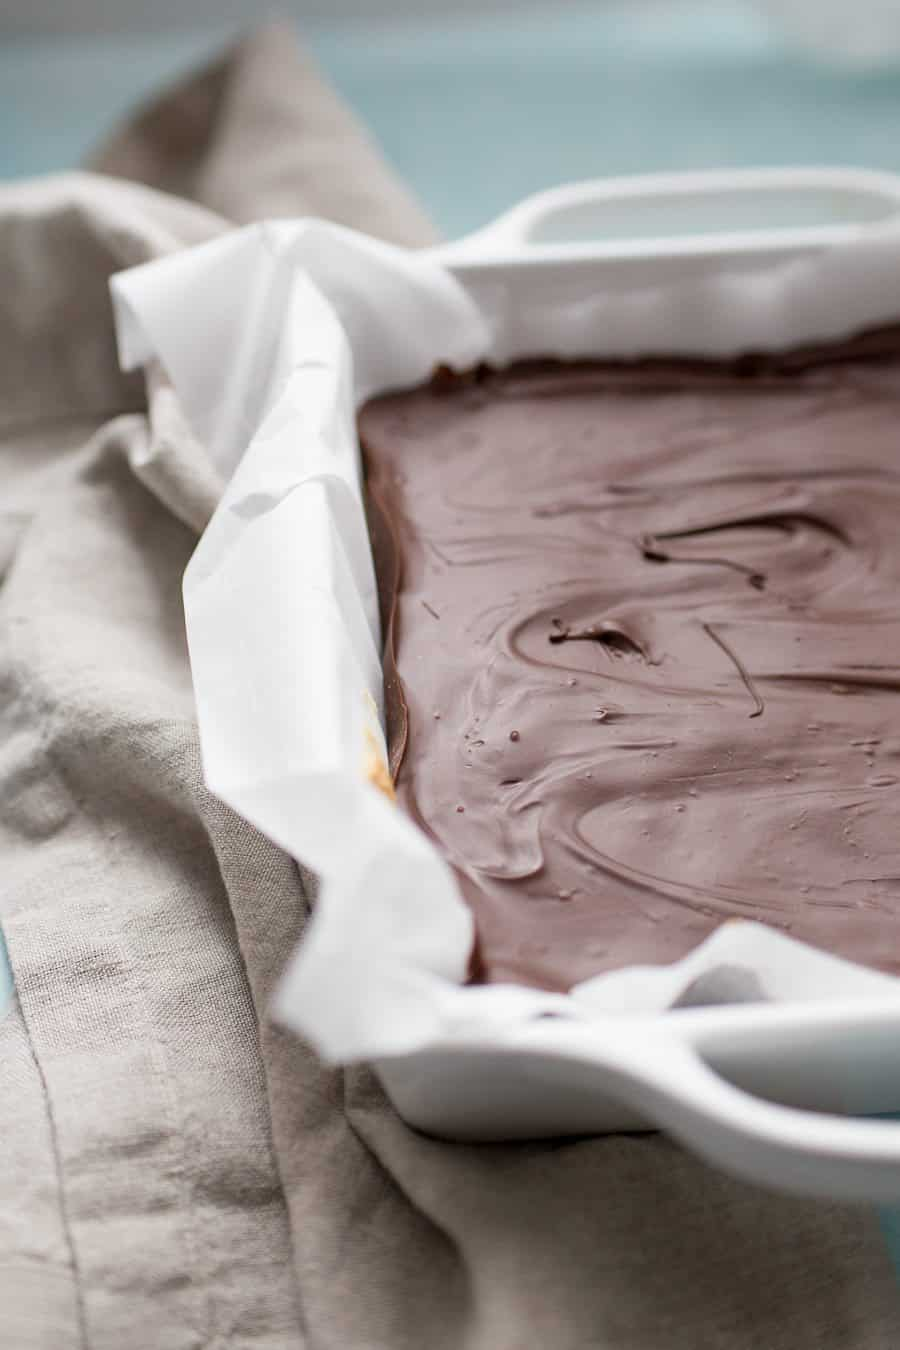 Chocolate bars in a white square baking dish lined with parchment paper, on top of a beige towel.